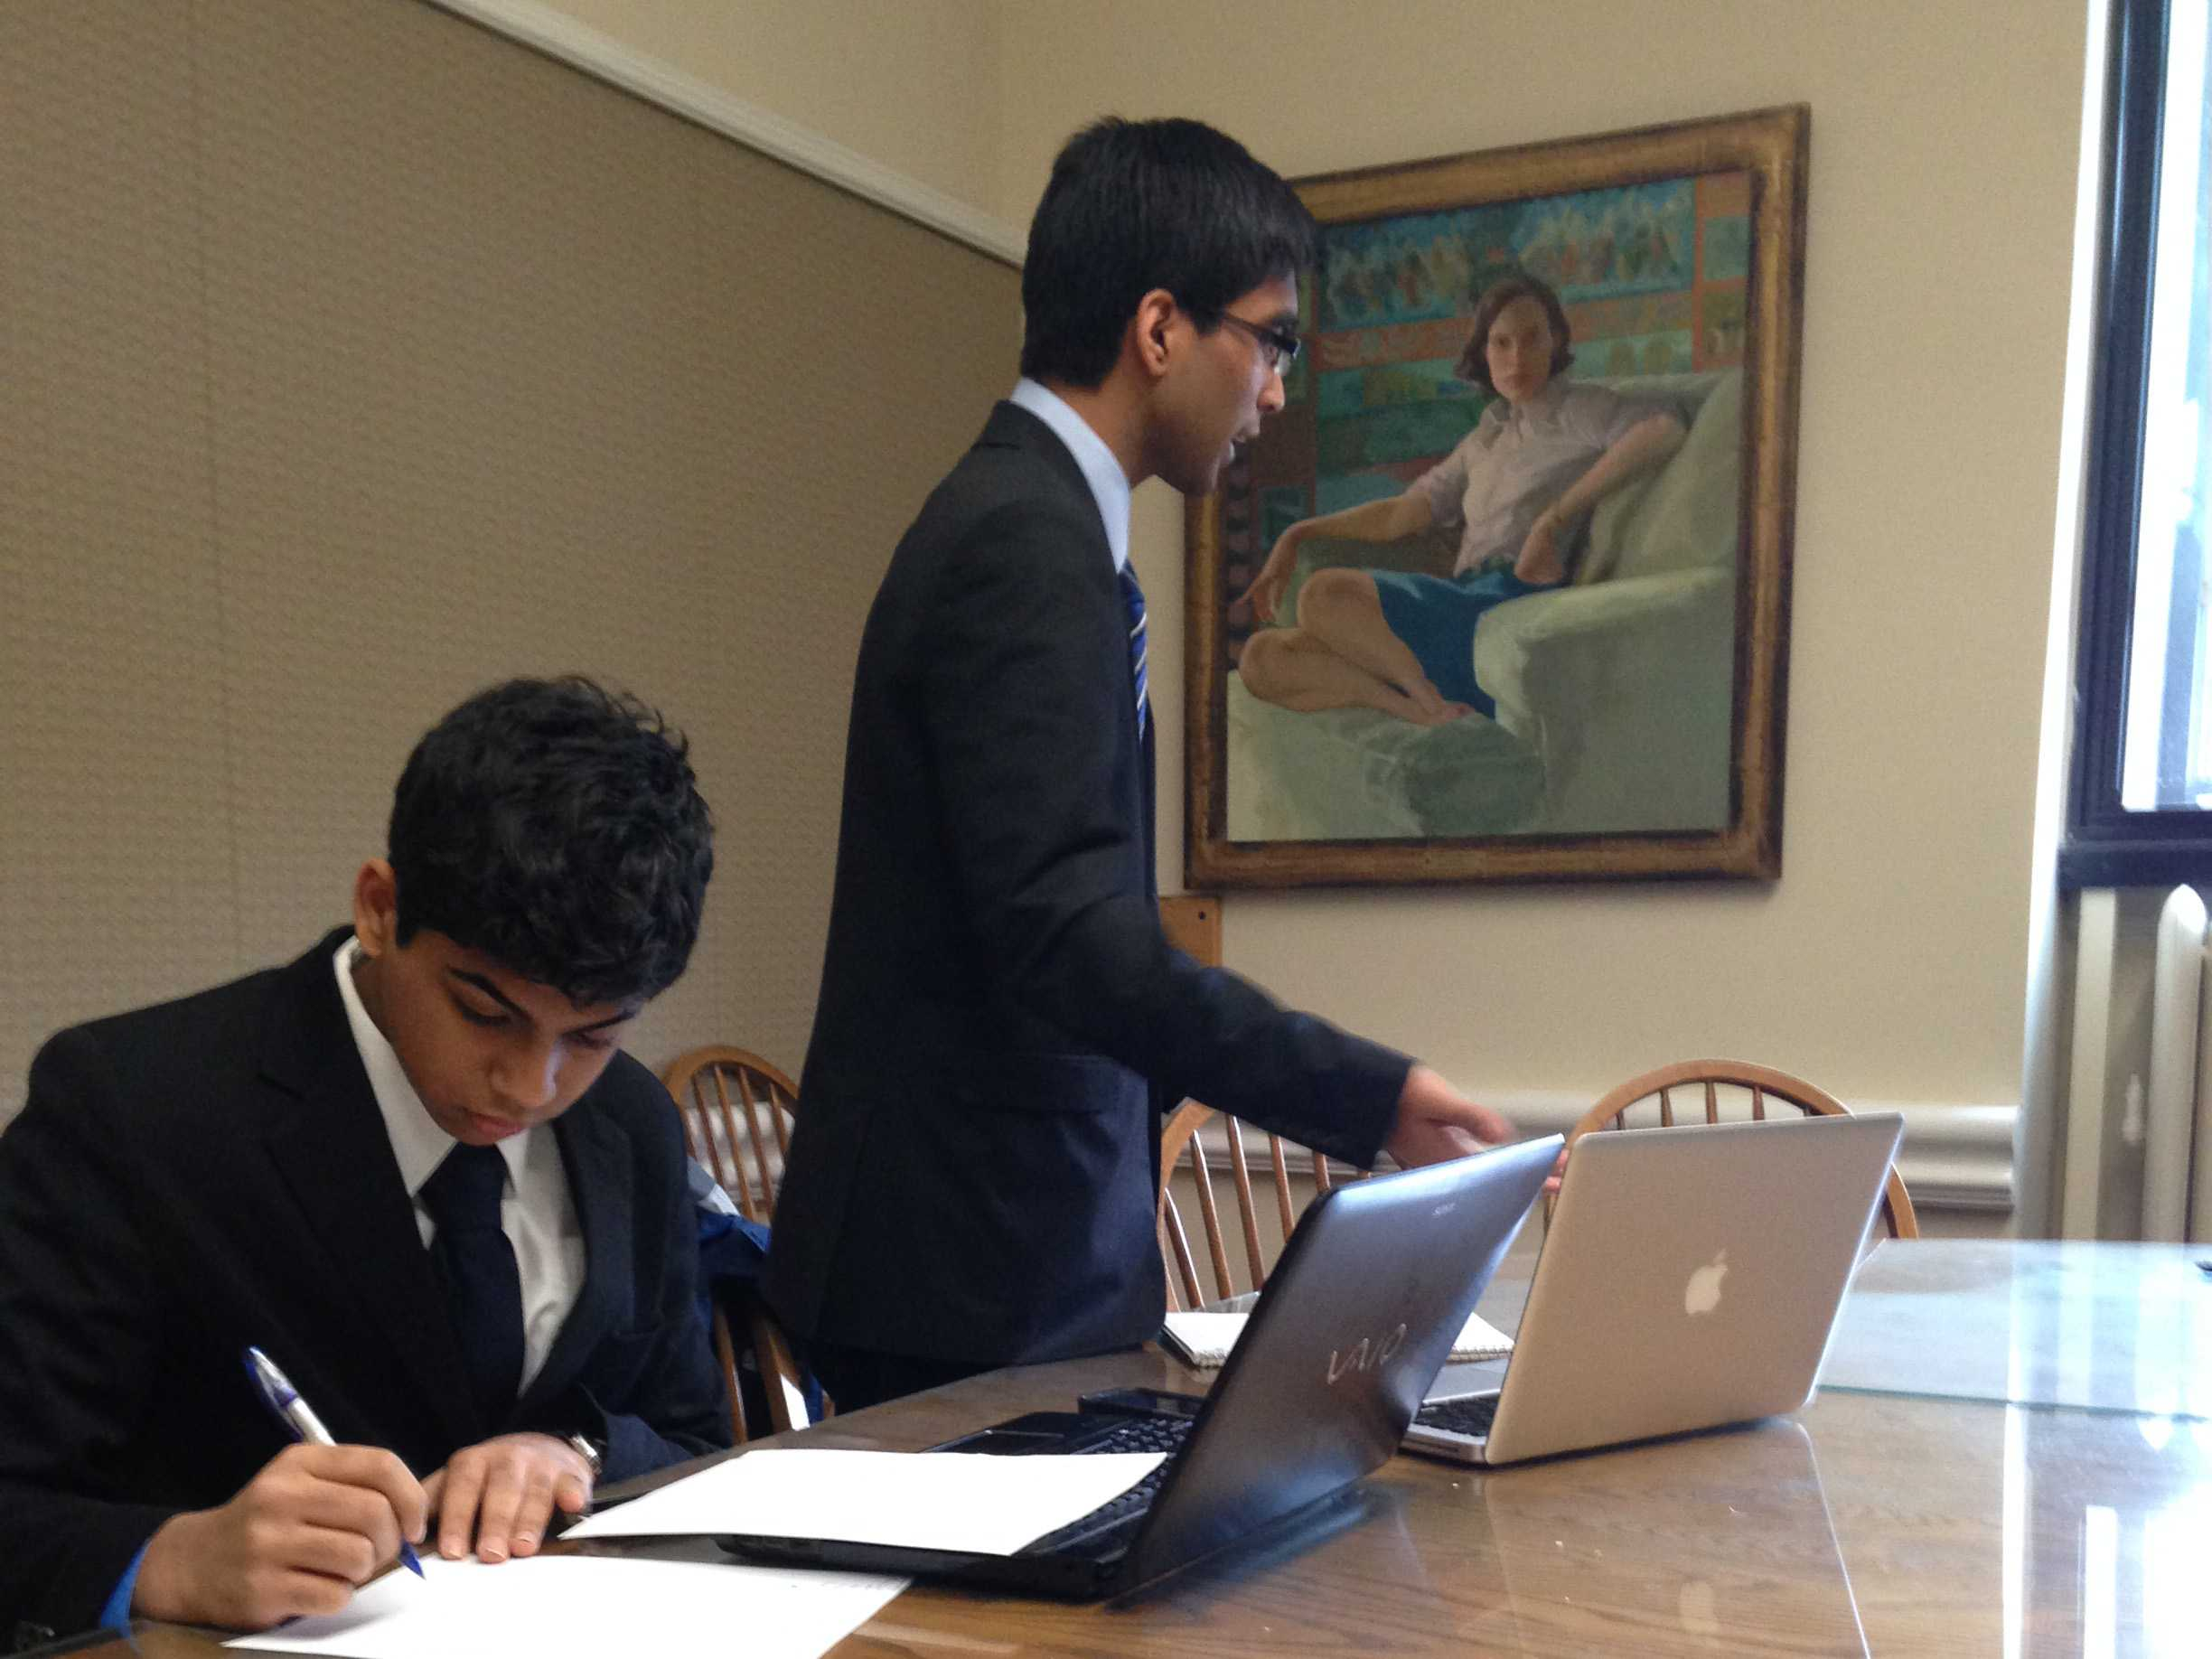 Sophomores Srijith Poduval (left) and Dhruv Gupta (right) are members of the Jefferson Public Forum debate team.